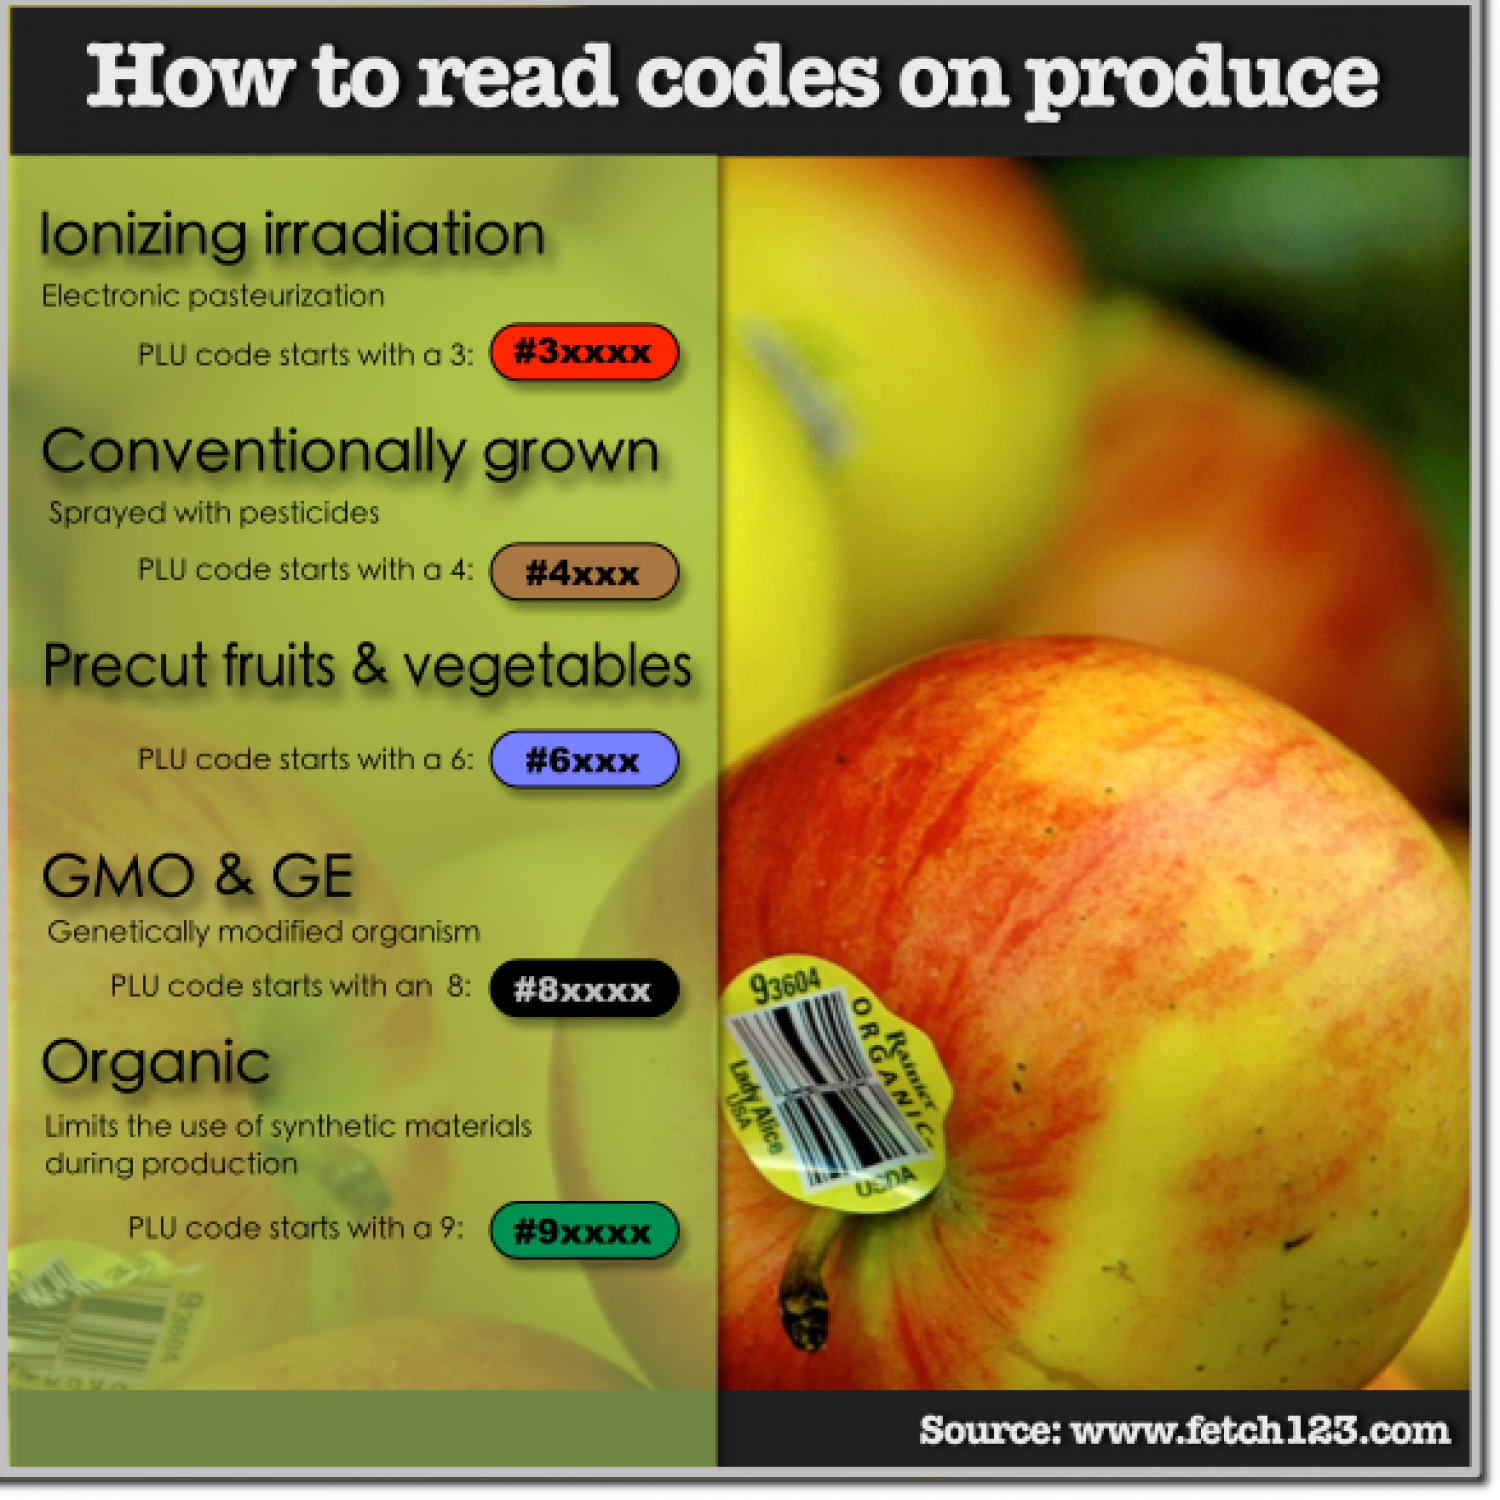 How to read codes on produce (infographic) Infographic